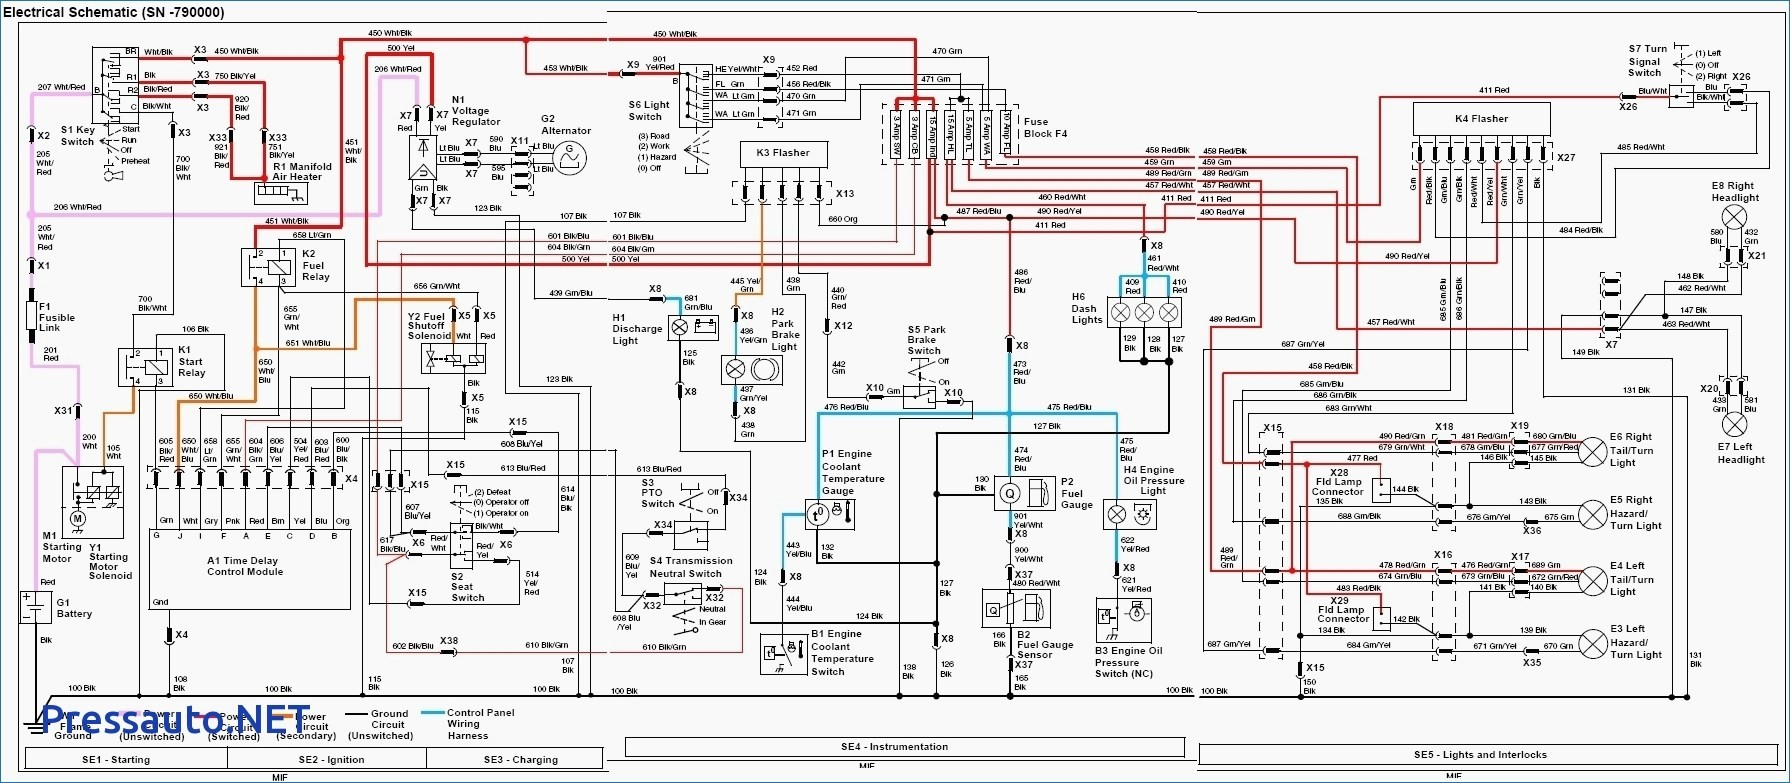 Tzh152fmh Wiring Diagram Library. Jd 345 Wiring Diagram. Wiring. Tzh152fmh Wiring Diagram Simple At Scoala.co